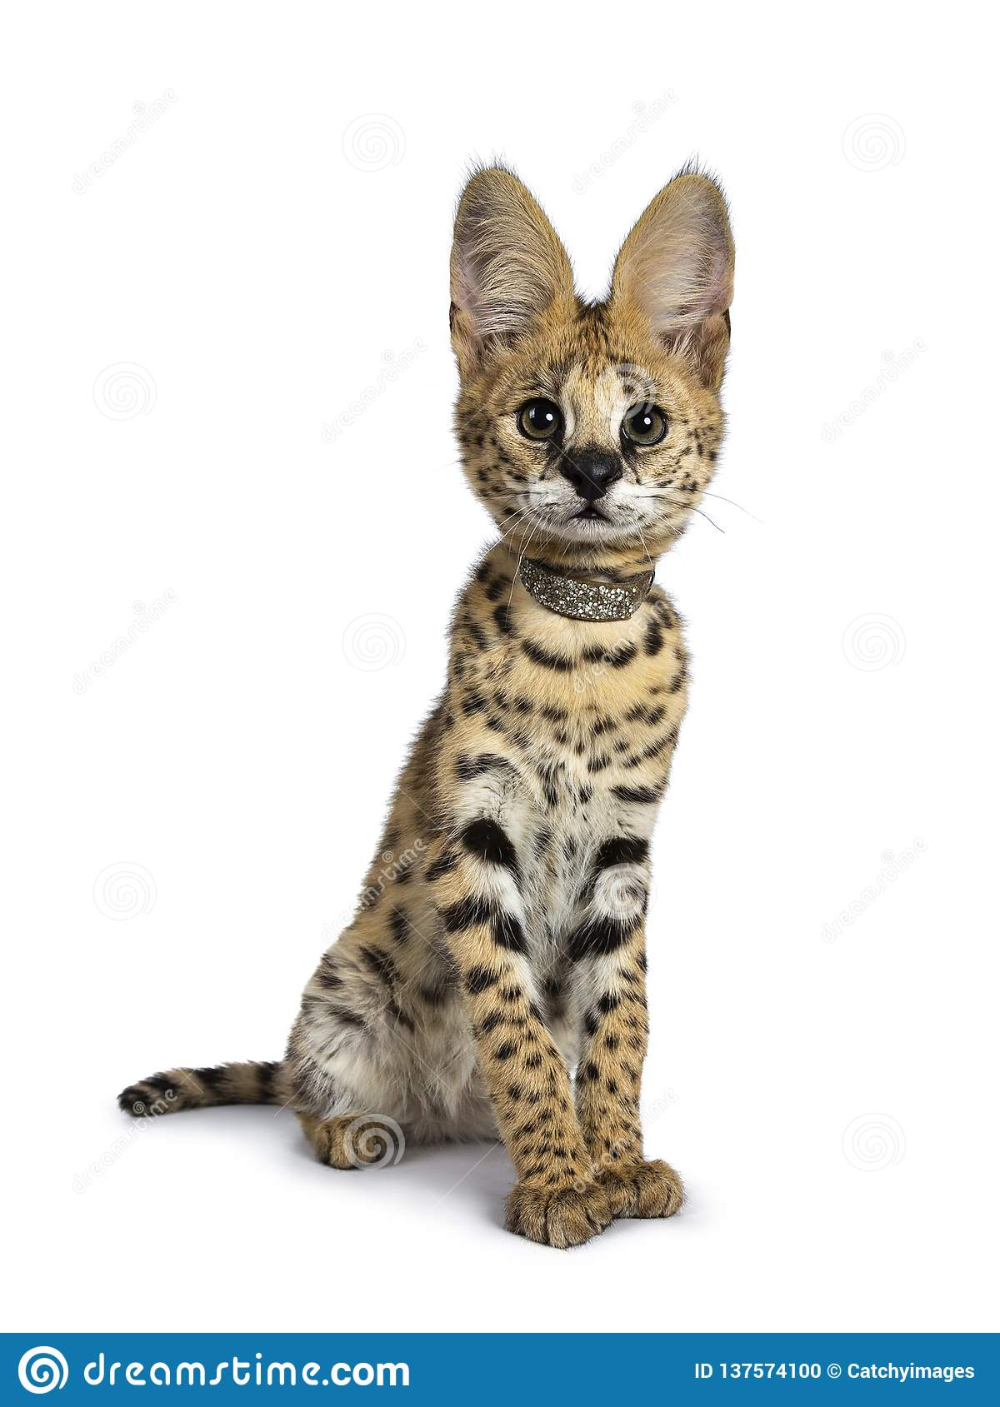 Cute 6 Months Young Serval Cat Kitten Isolated On White Background Photo About Safari African Leopard Fou Serval Cats African Serval Cat Cats And Kittens